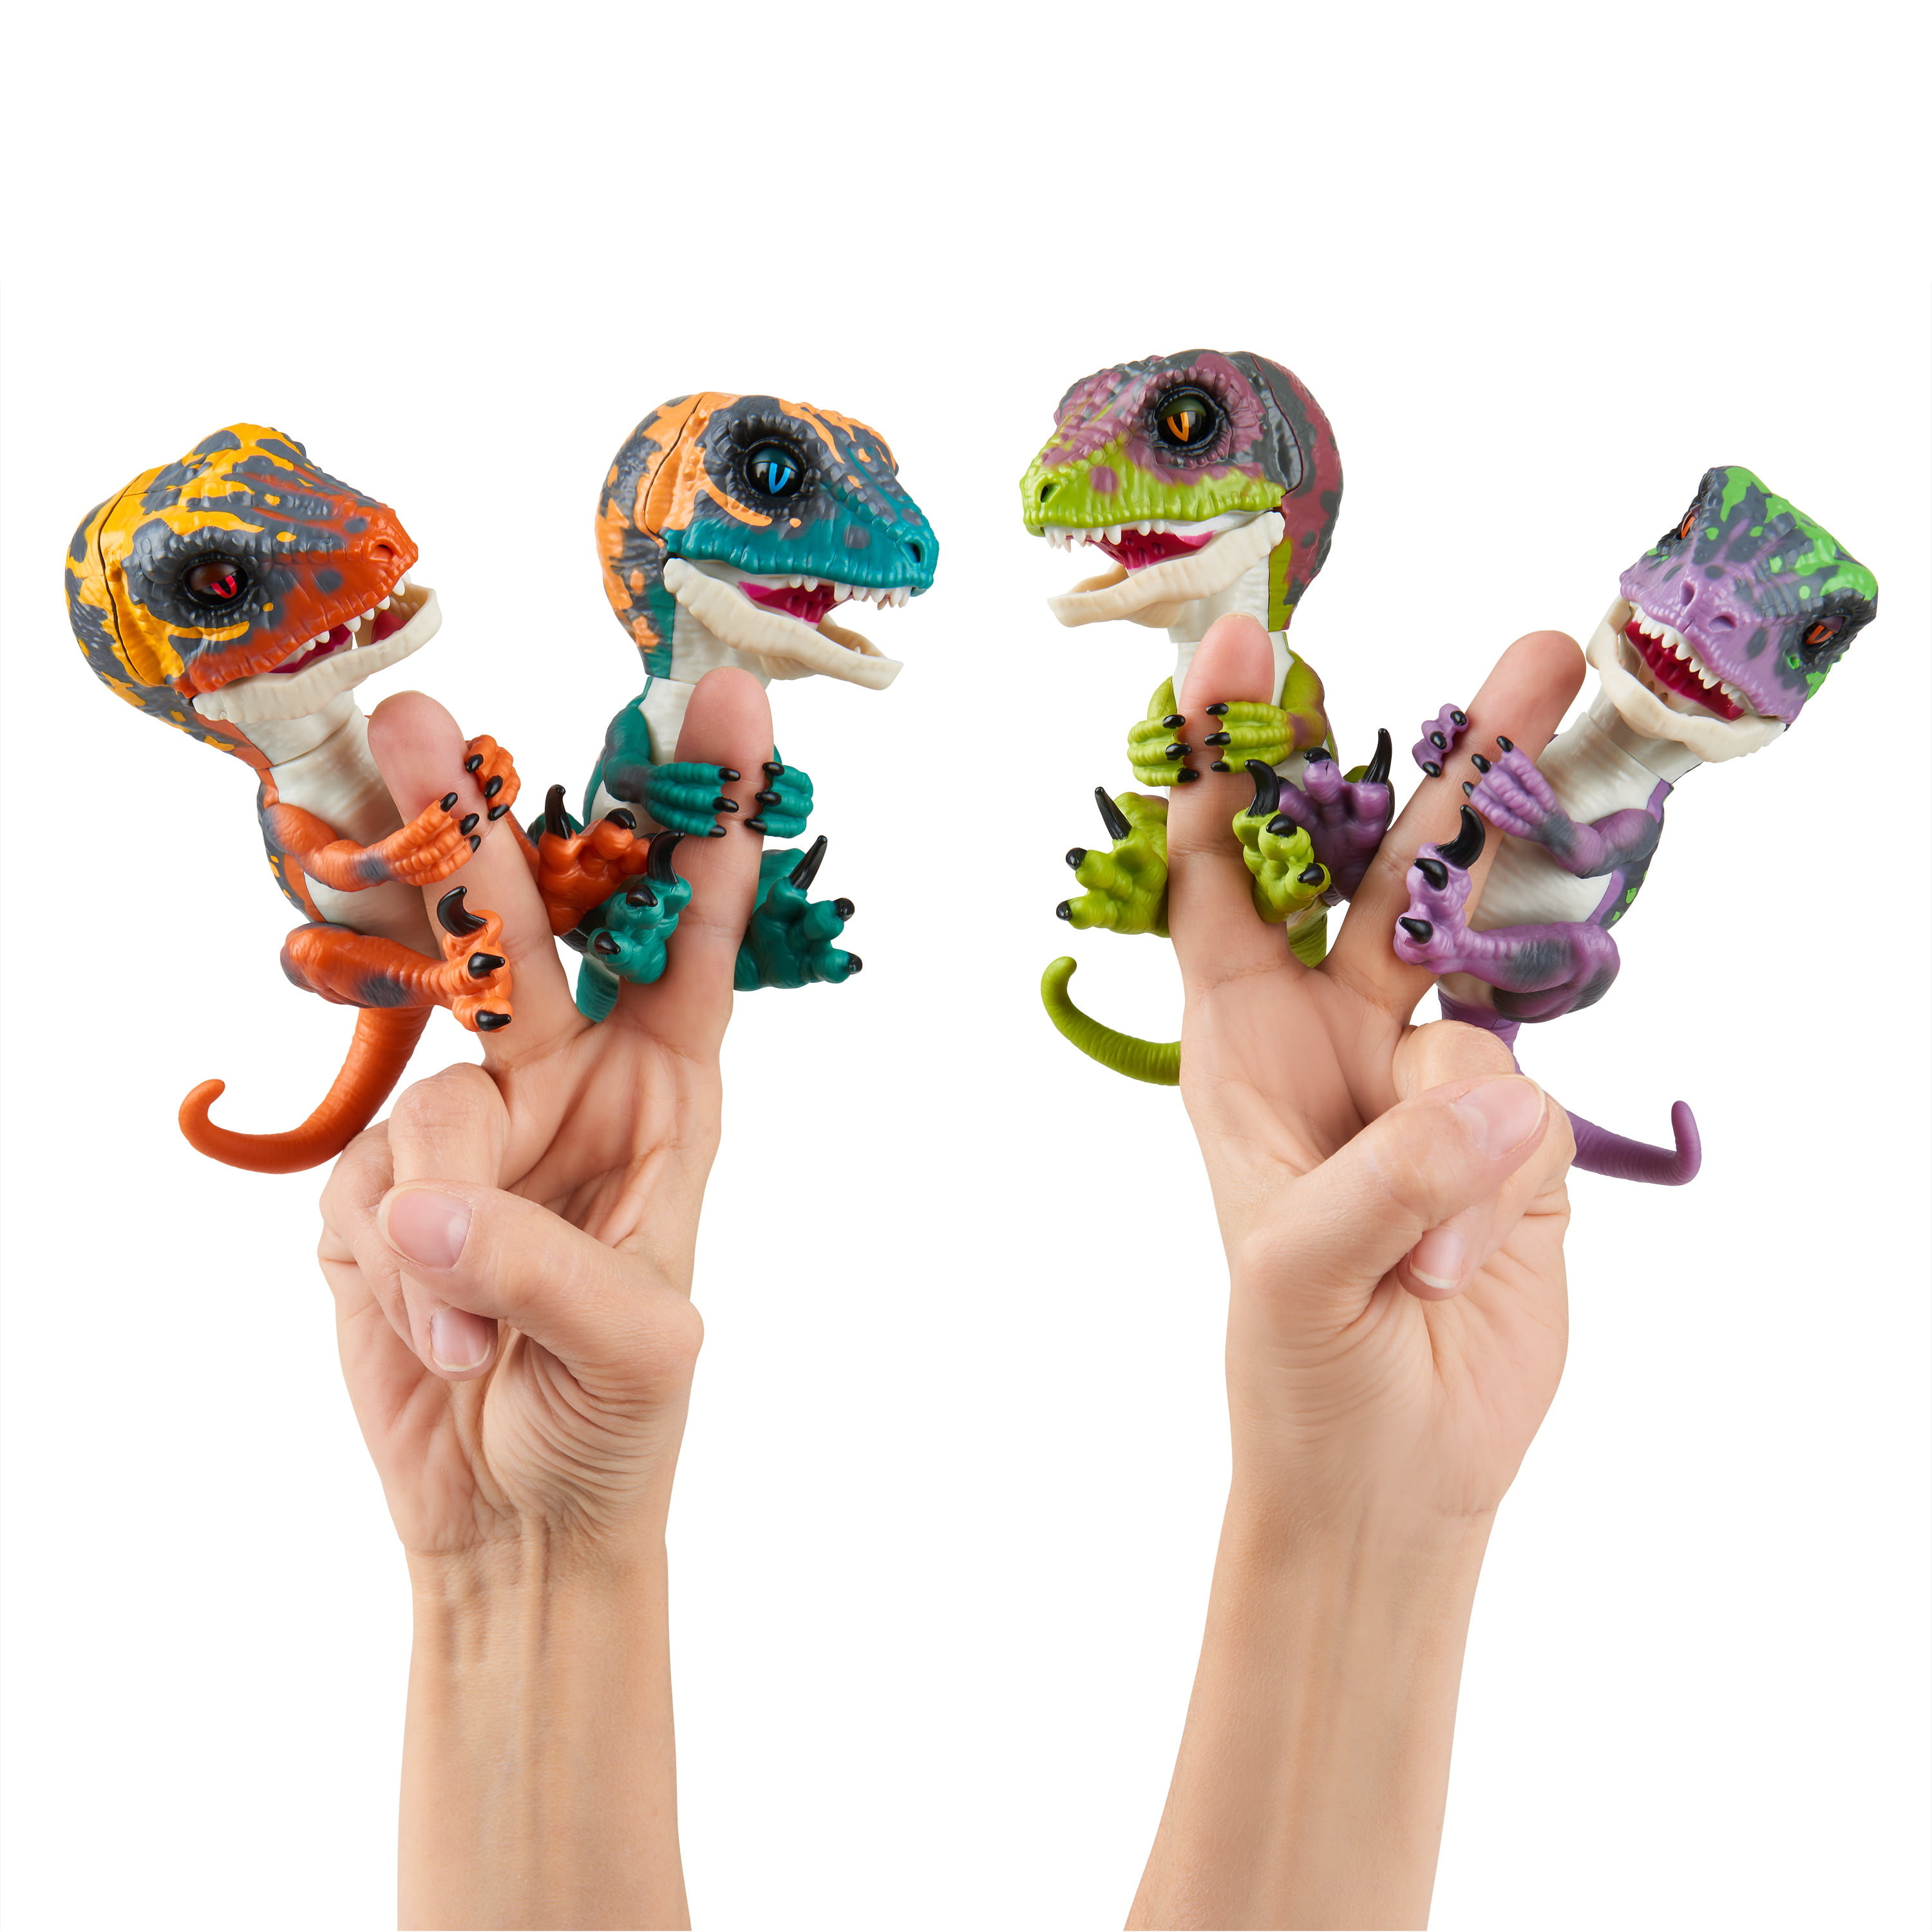 Untamed Raptor Series 1 Fury Interactive Dinosaur By Wowwee Walmart Com Walmart Com A couple in a troubled marriage locate a meteorite, initiating an encounter with a mysterious creature. walmart